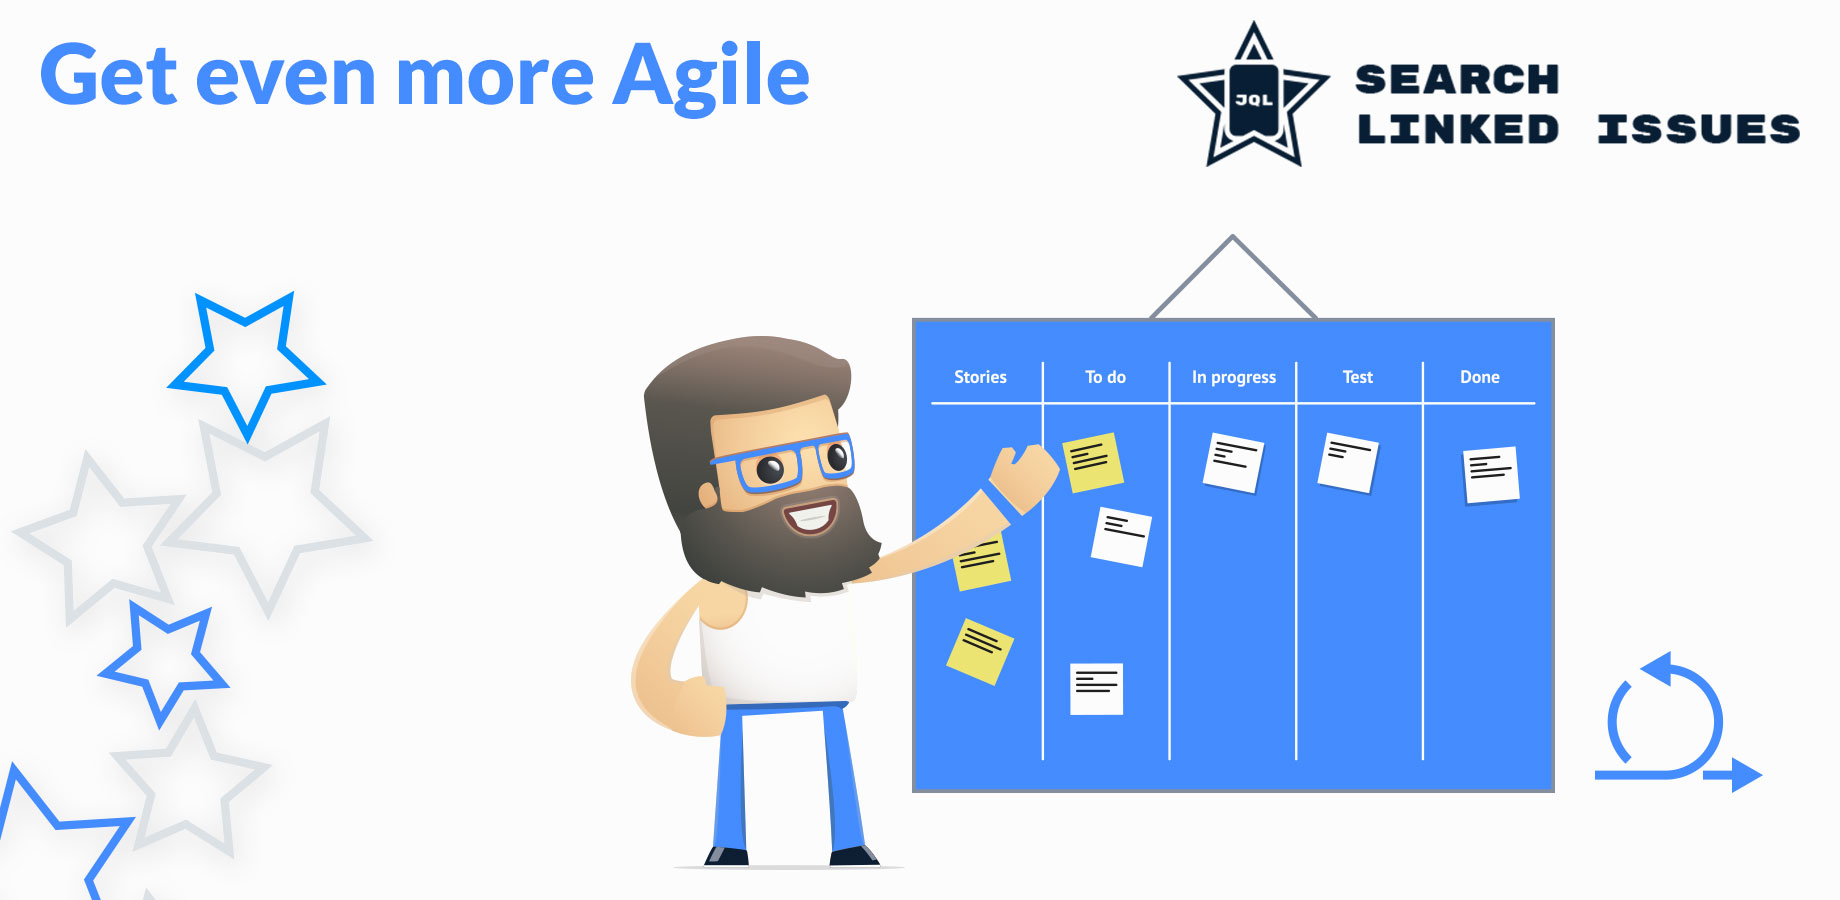 Get even more Agile